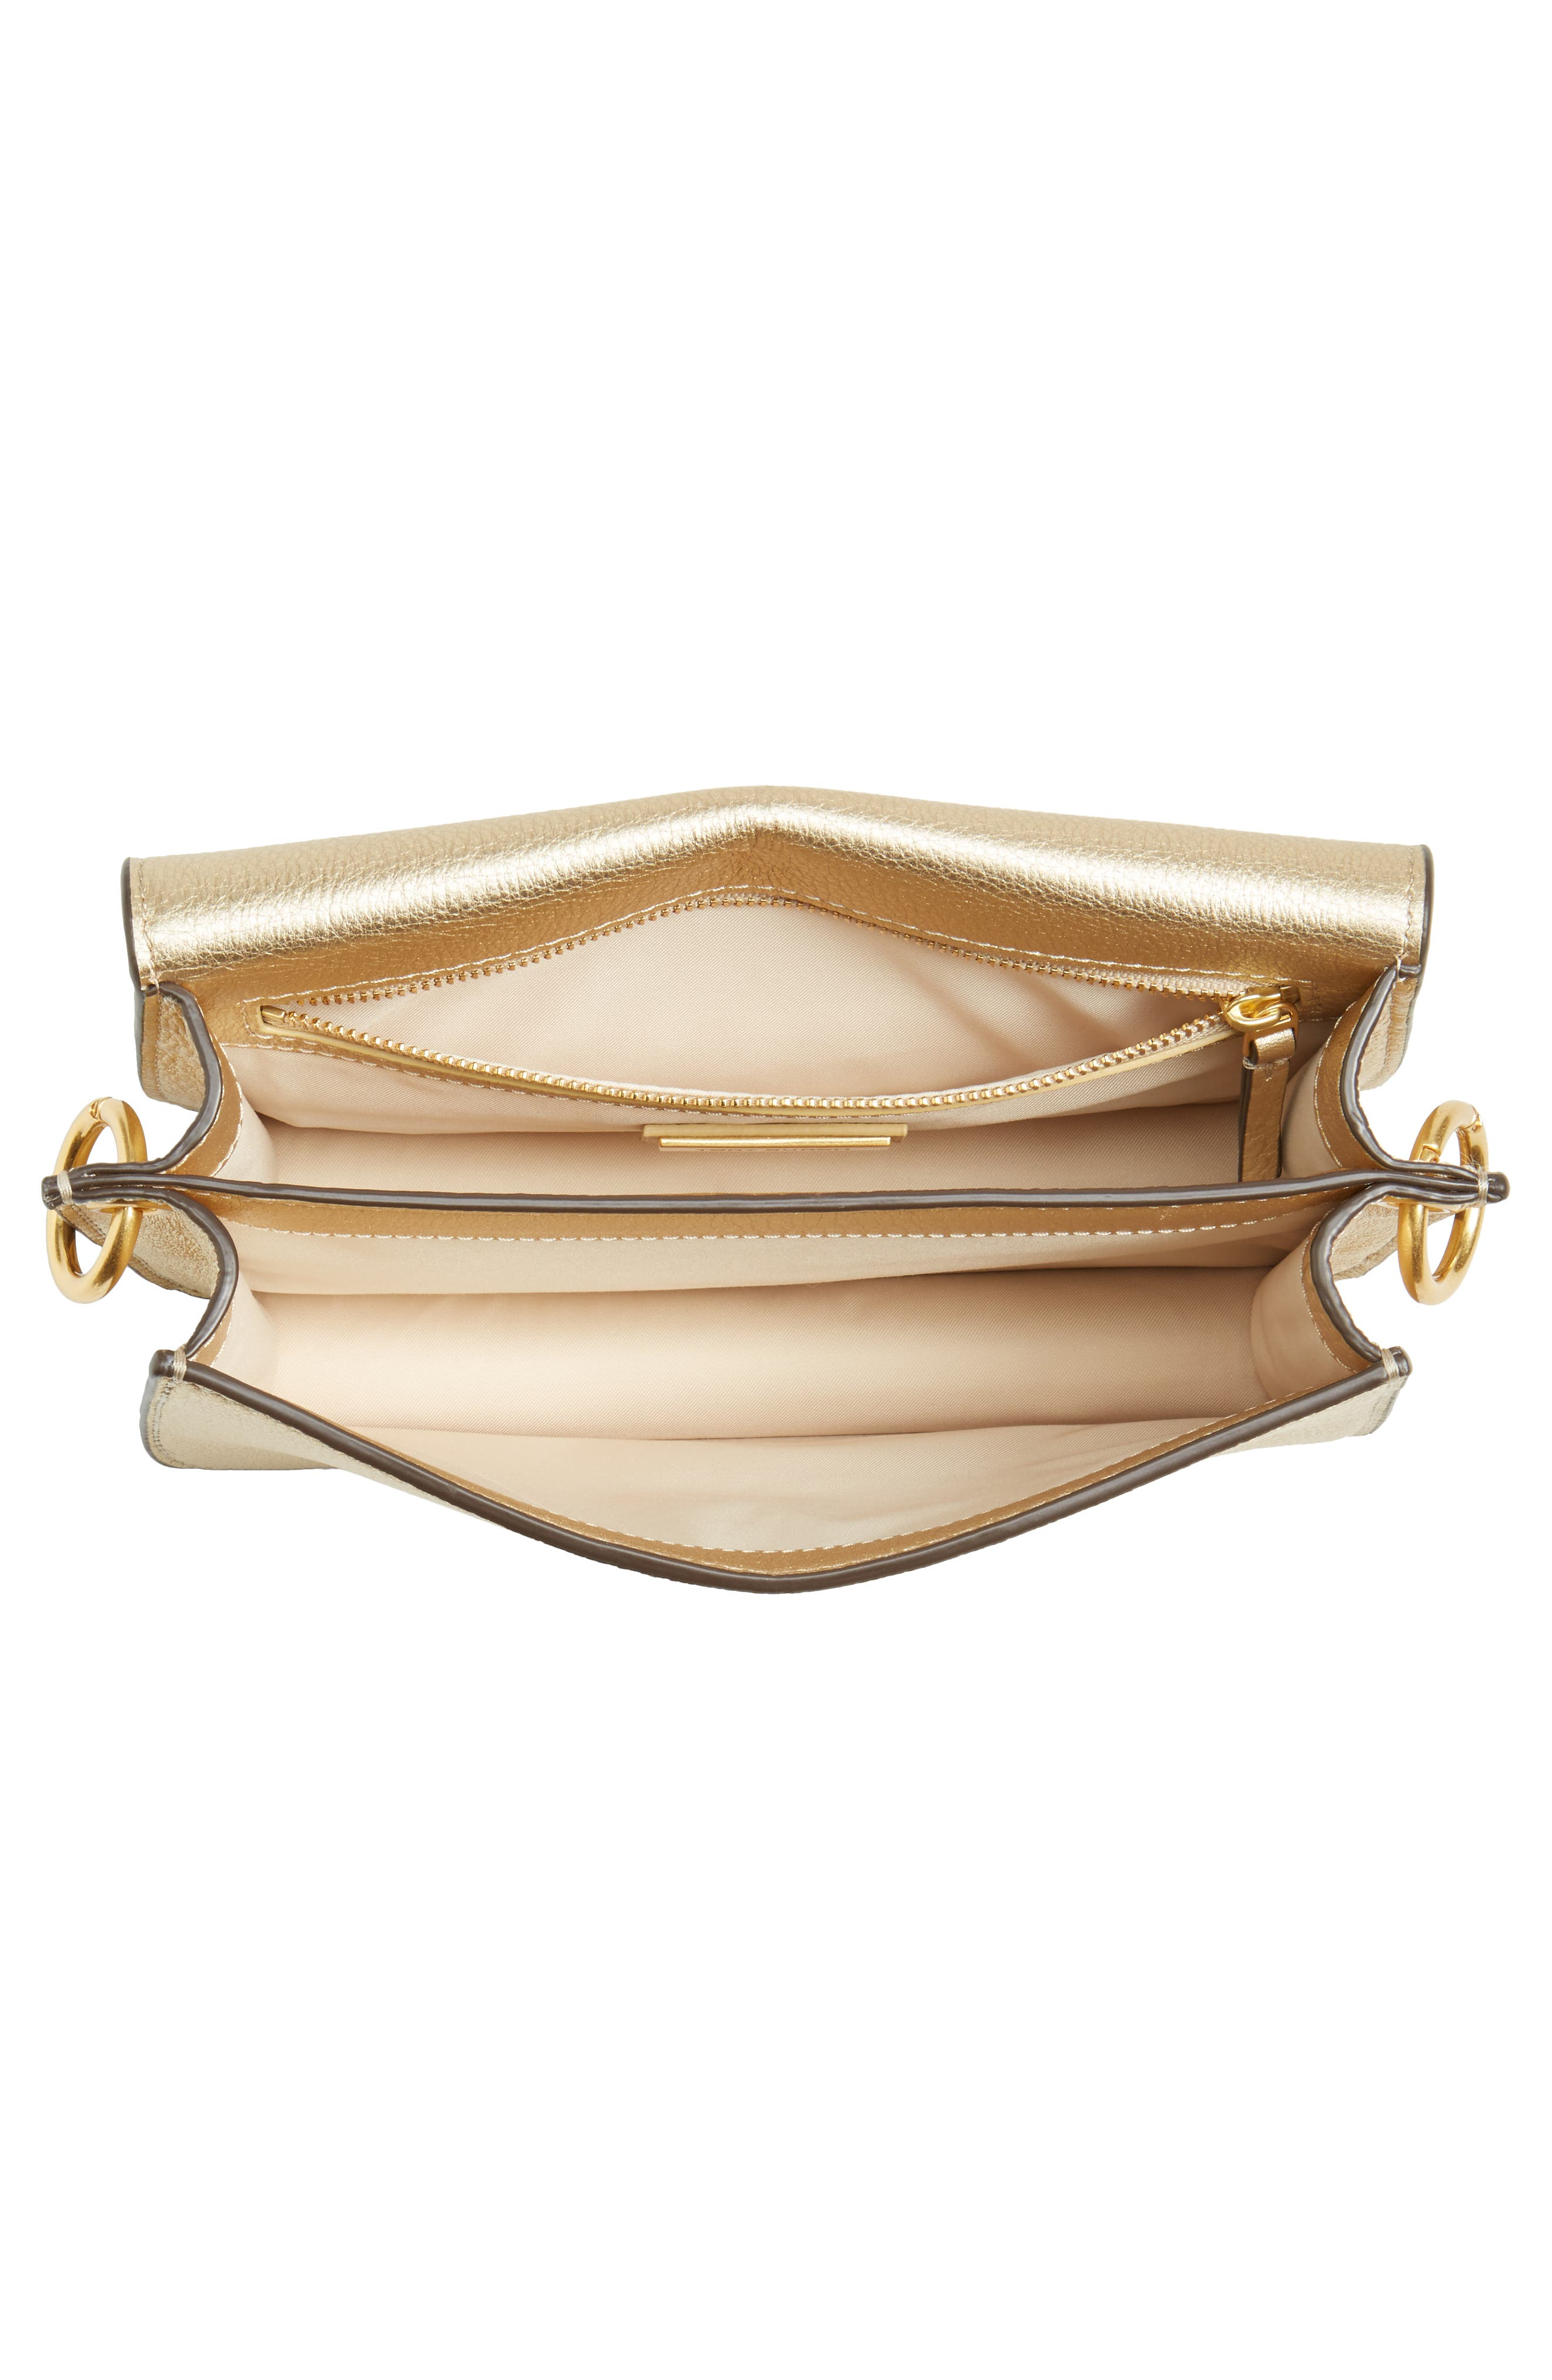 McGraw Metallic Leather Shoulder Bag,                             Alternate thumbnail 4, color,                             Gold